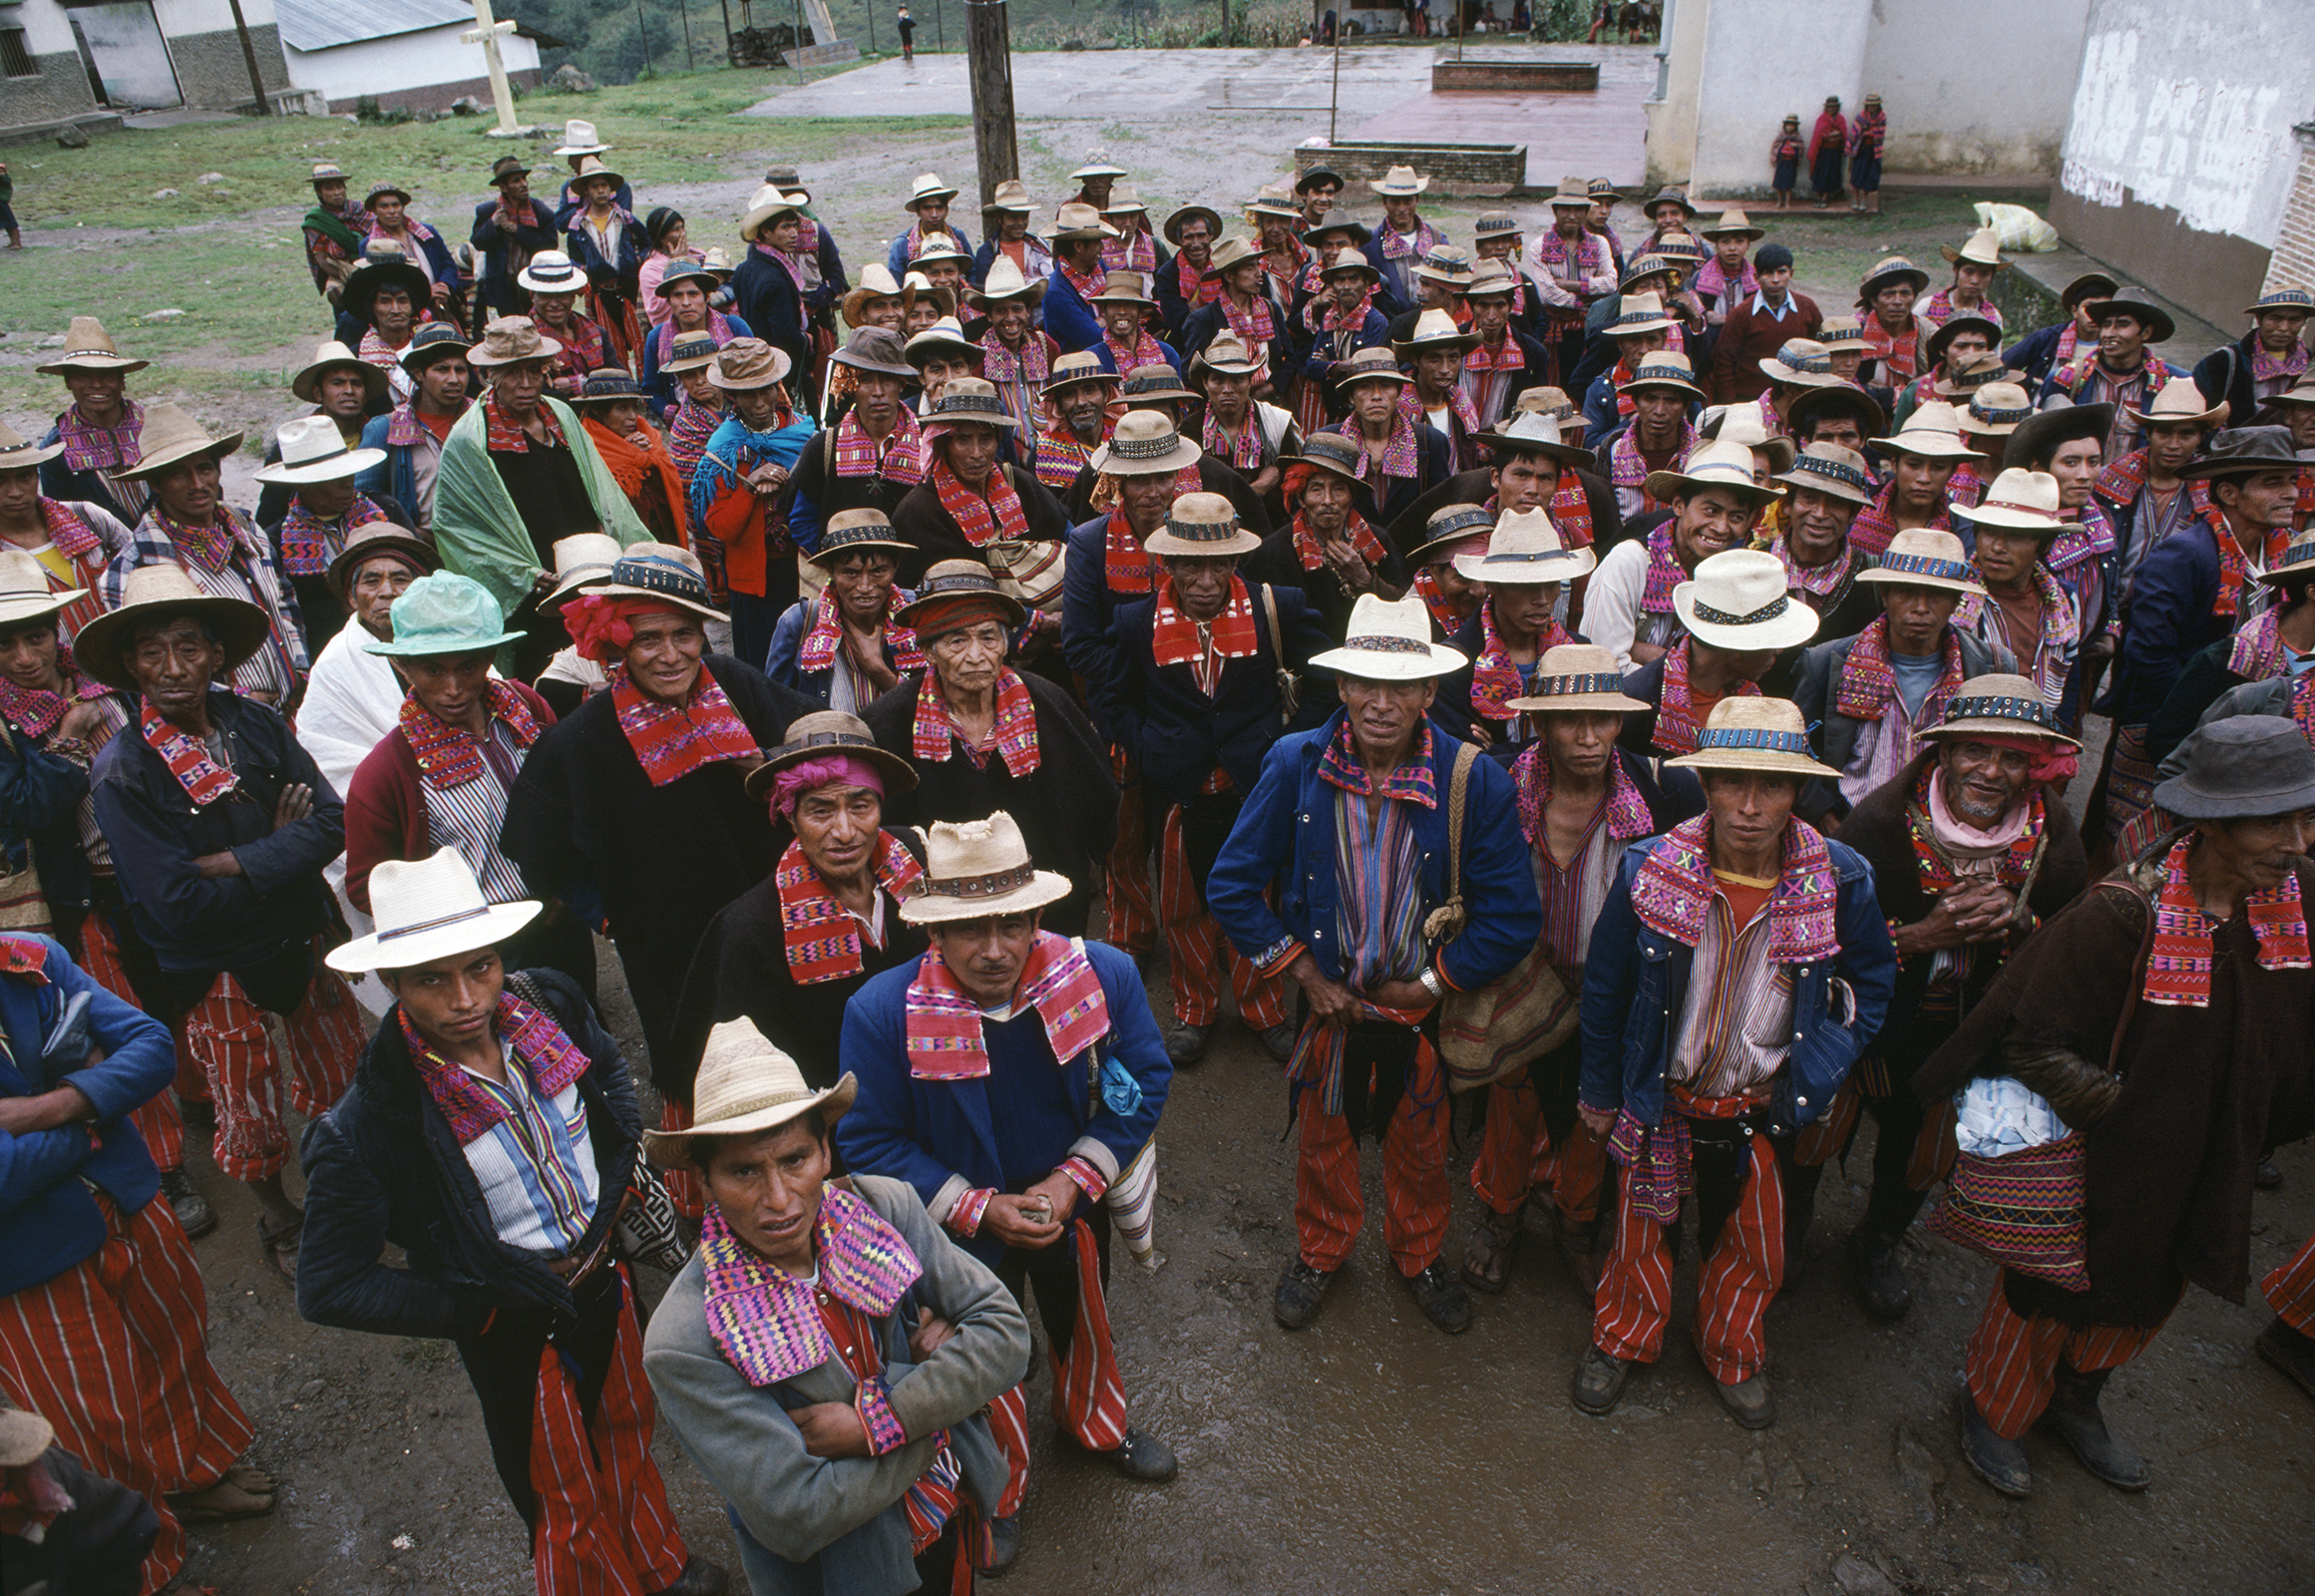 Members of a local Civil Defense Patrol stand for a photograph in the town square in Todos Santos, Guatemala on September 1, 1982.